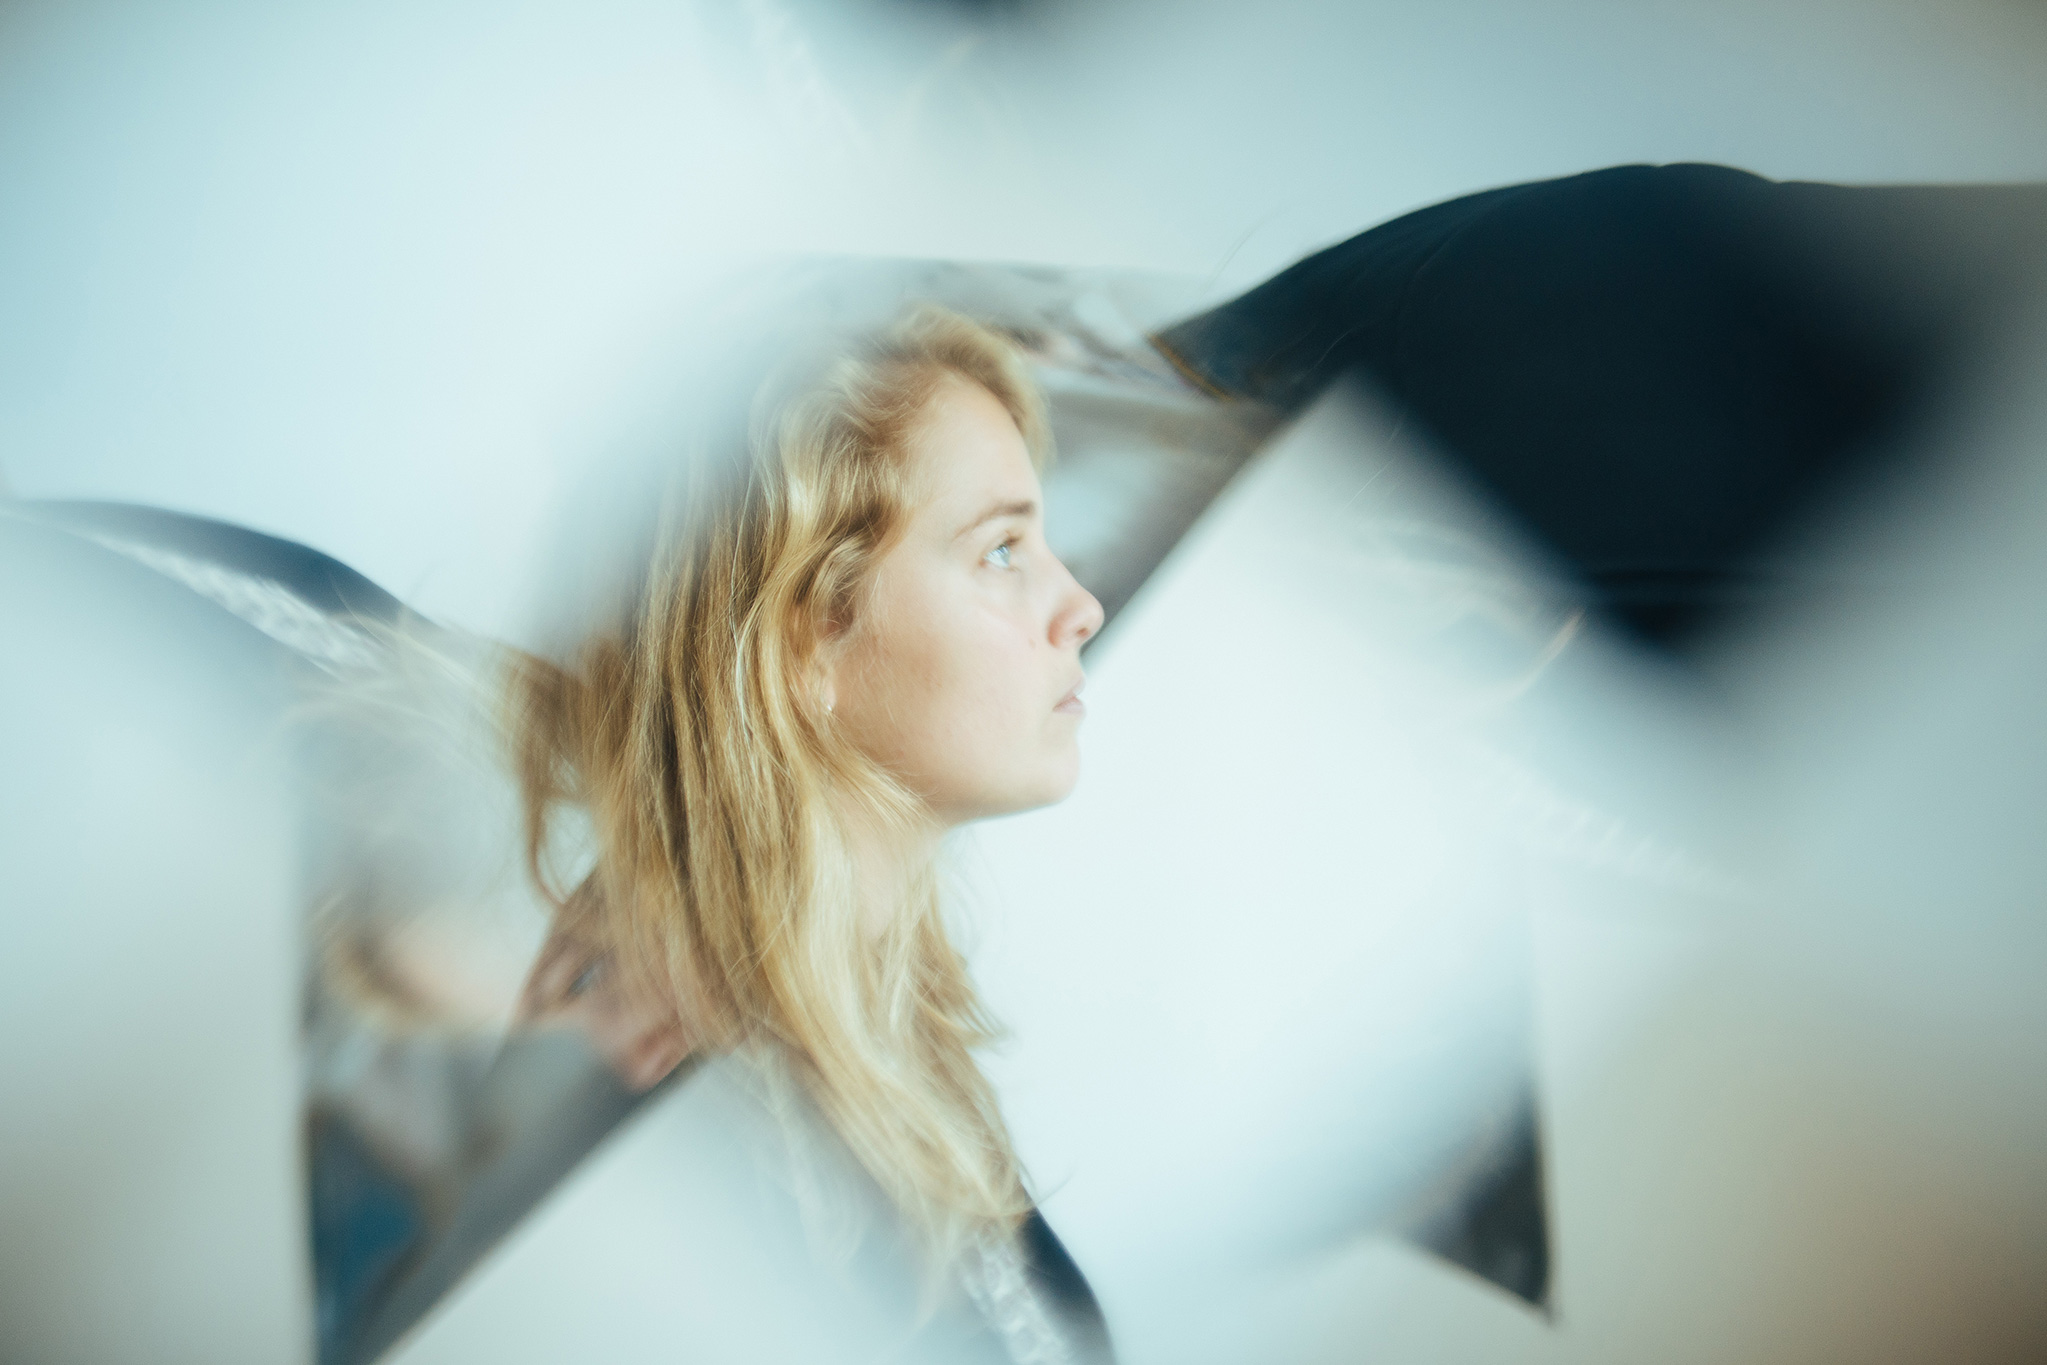 Always on the lookout for Dementors: Marika Hackman